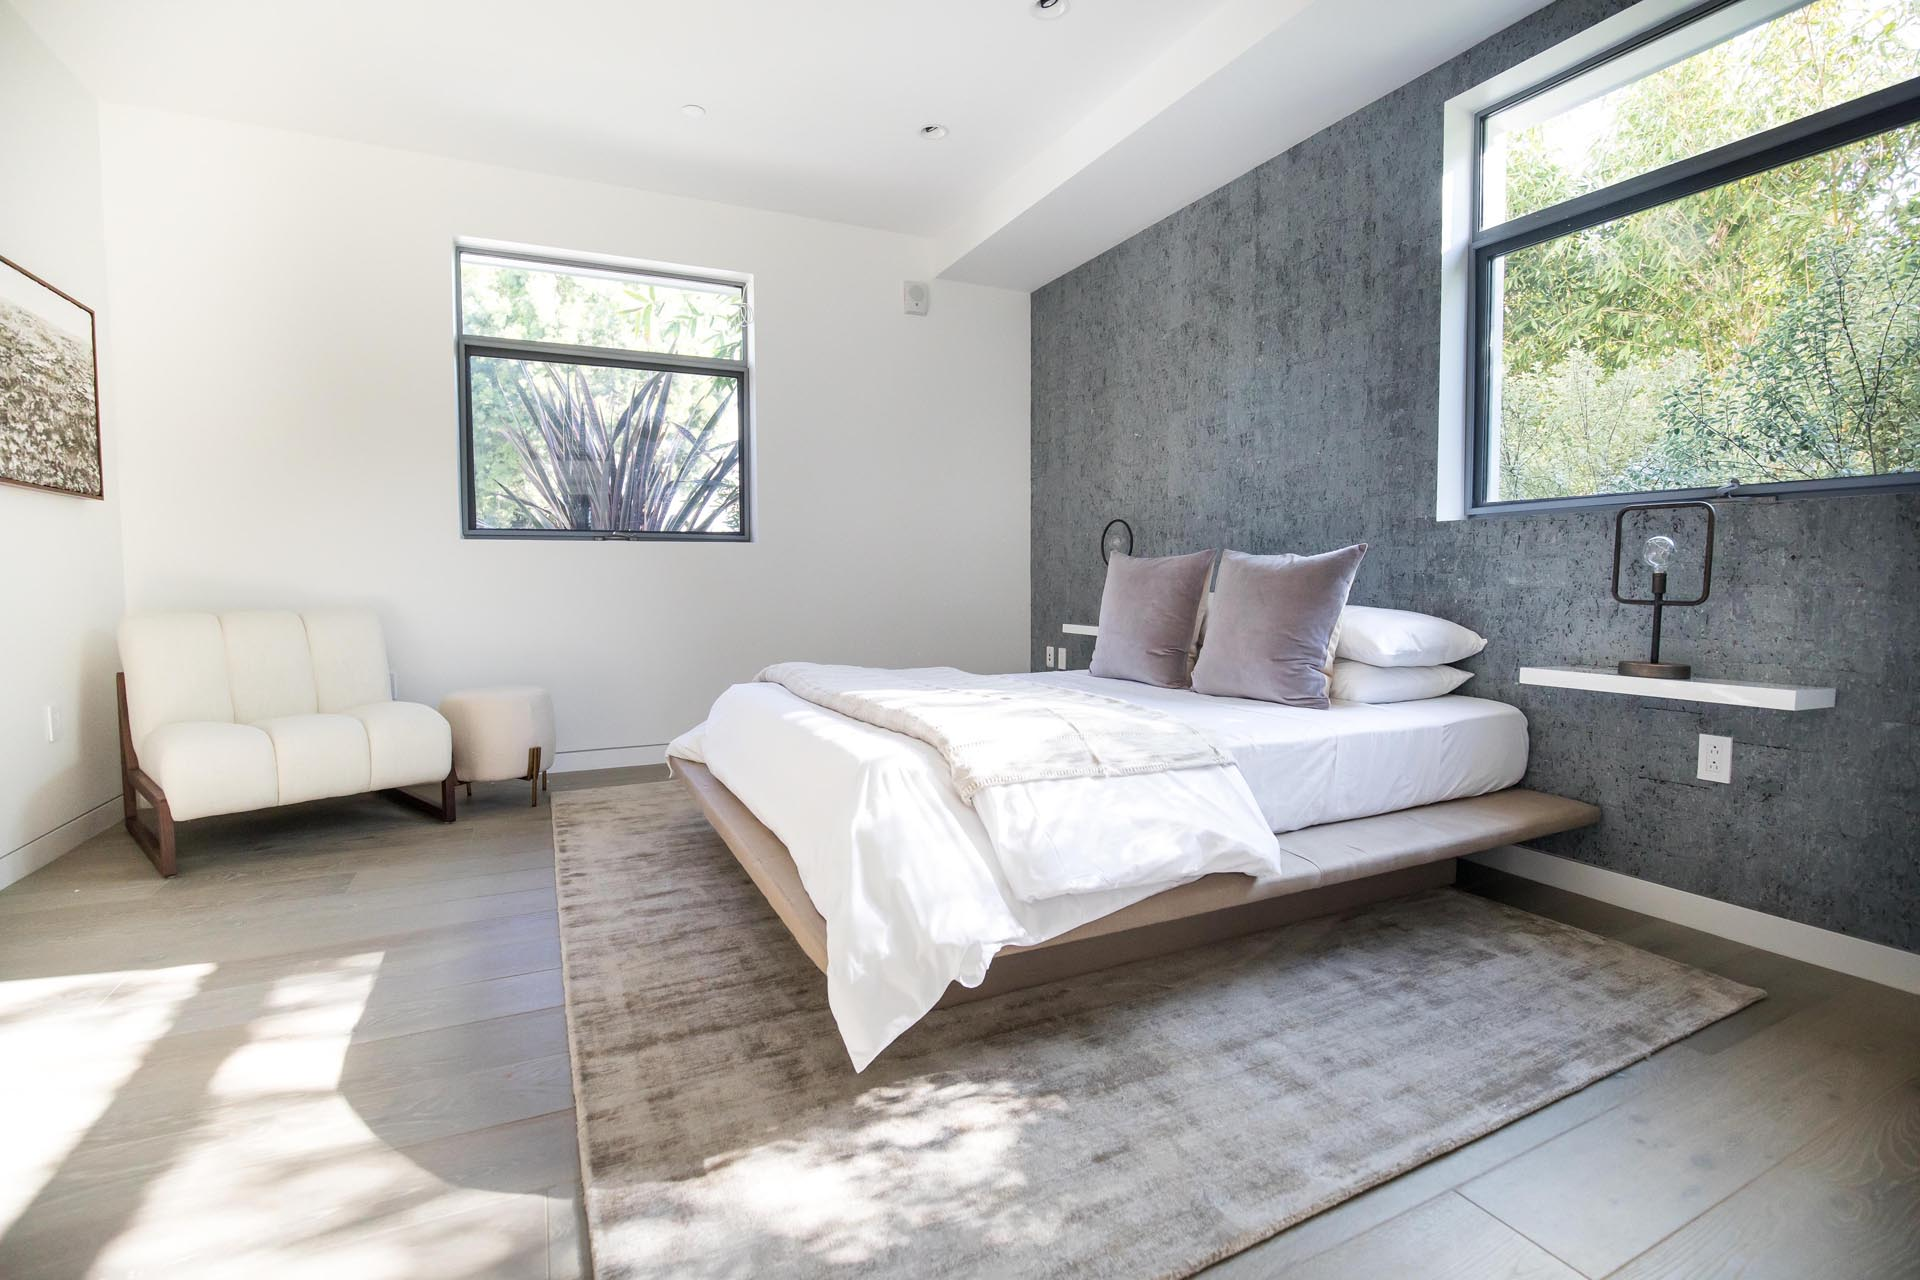 A minimalist bedroom with wall-mounted bedside tables.